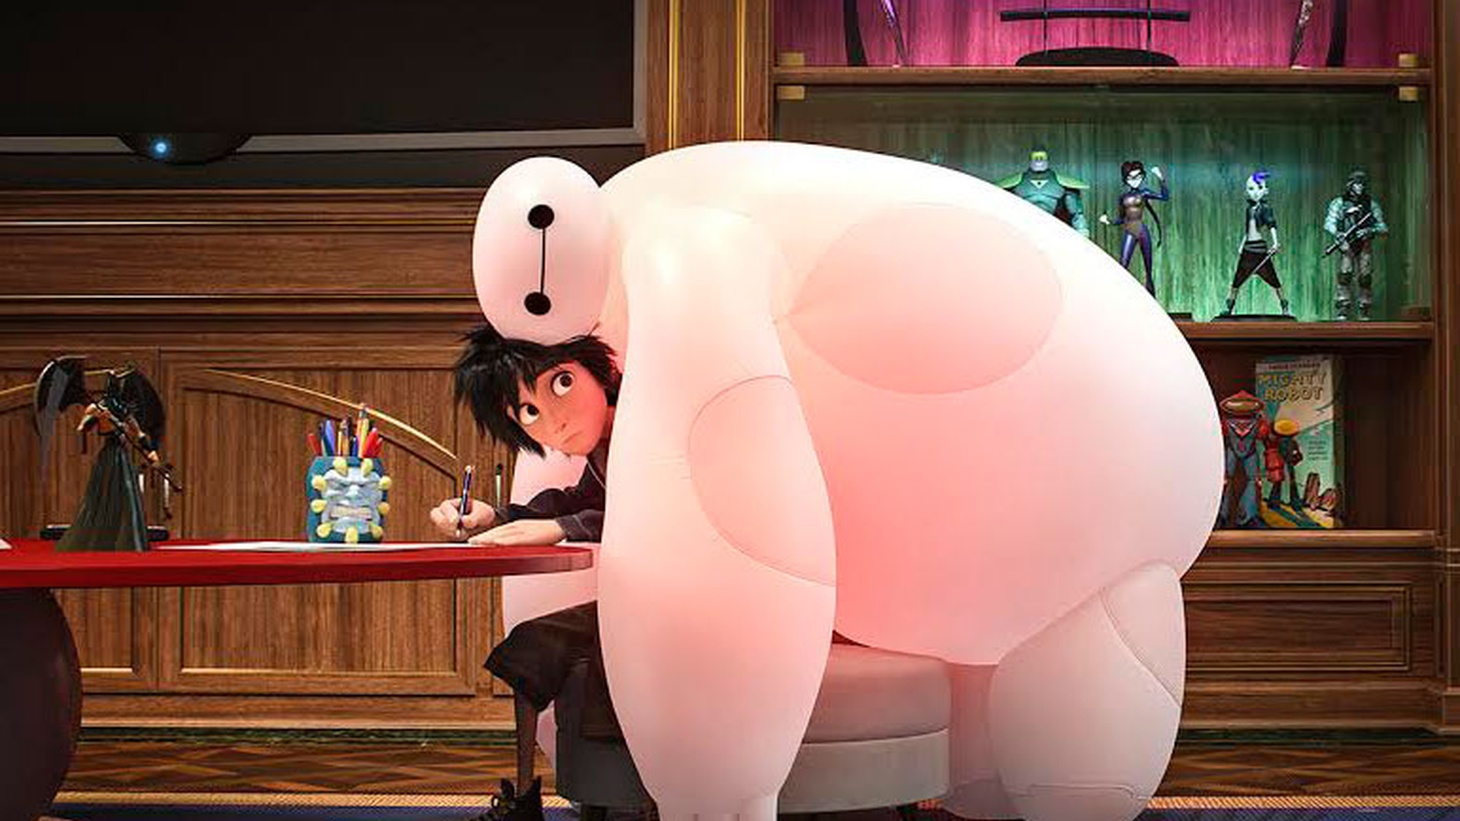 Big Hero 6 is the first Disney animated feature to use characters from the Marvel library, but it's not being marketed that way. Producer Roy Conli and Disney Animation Studios president Andrew Millstein explain why.